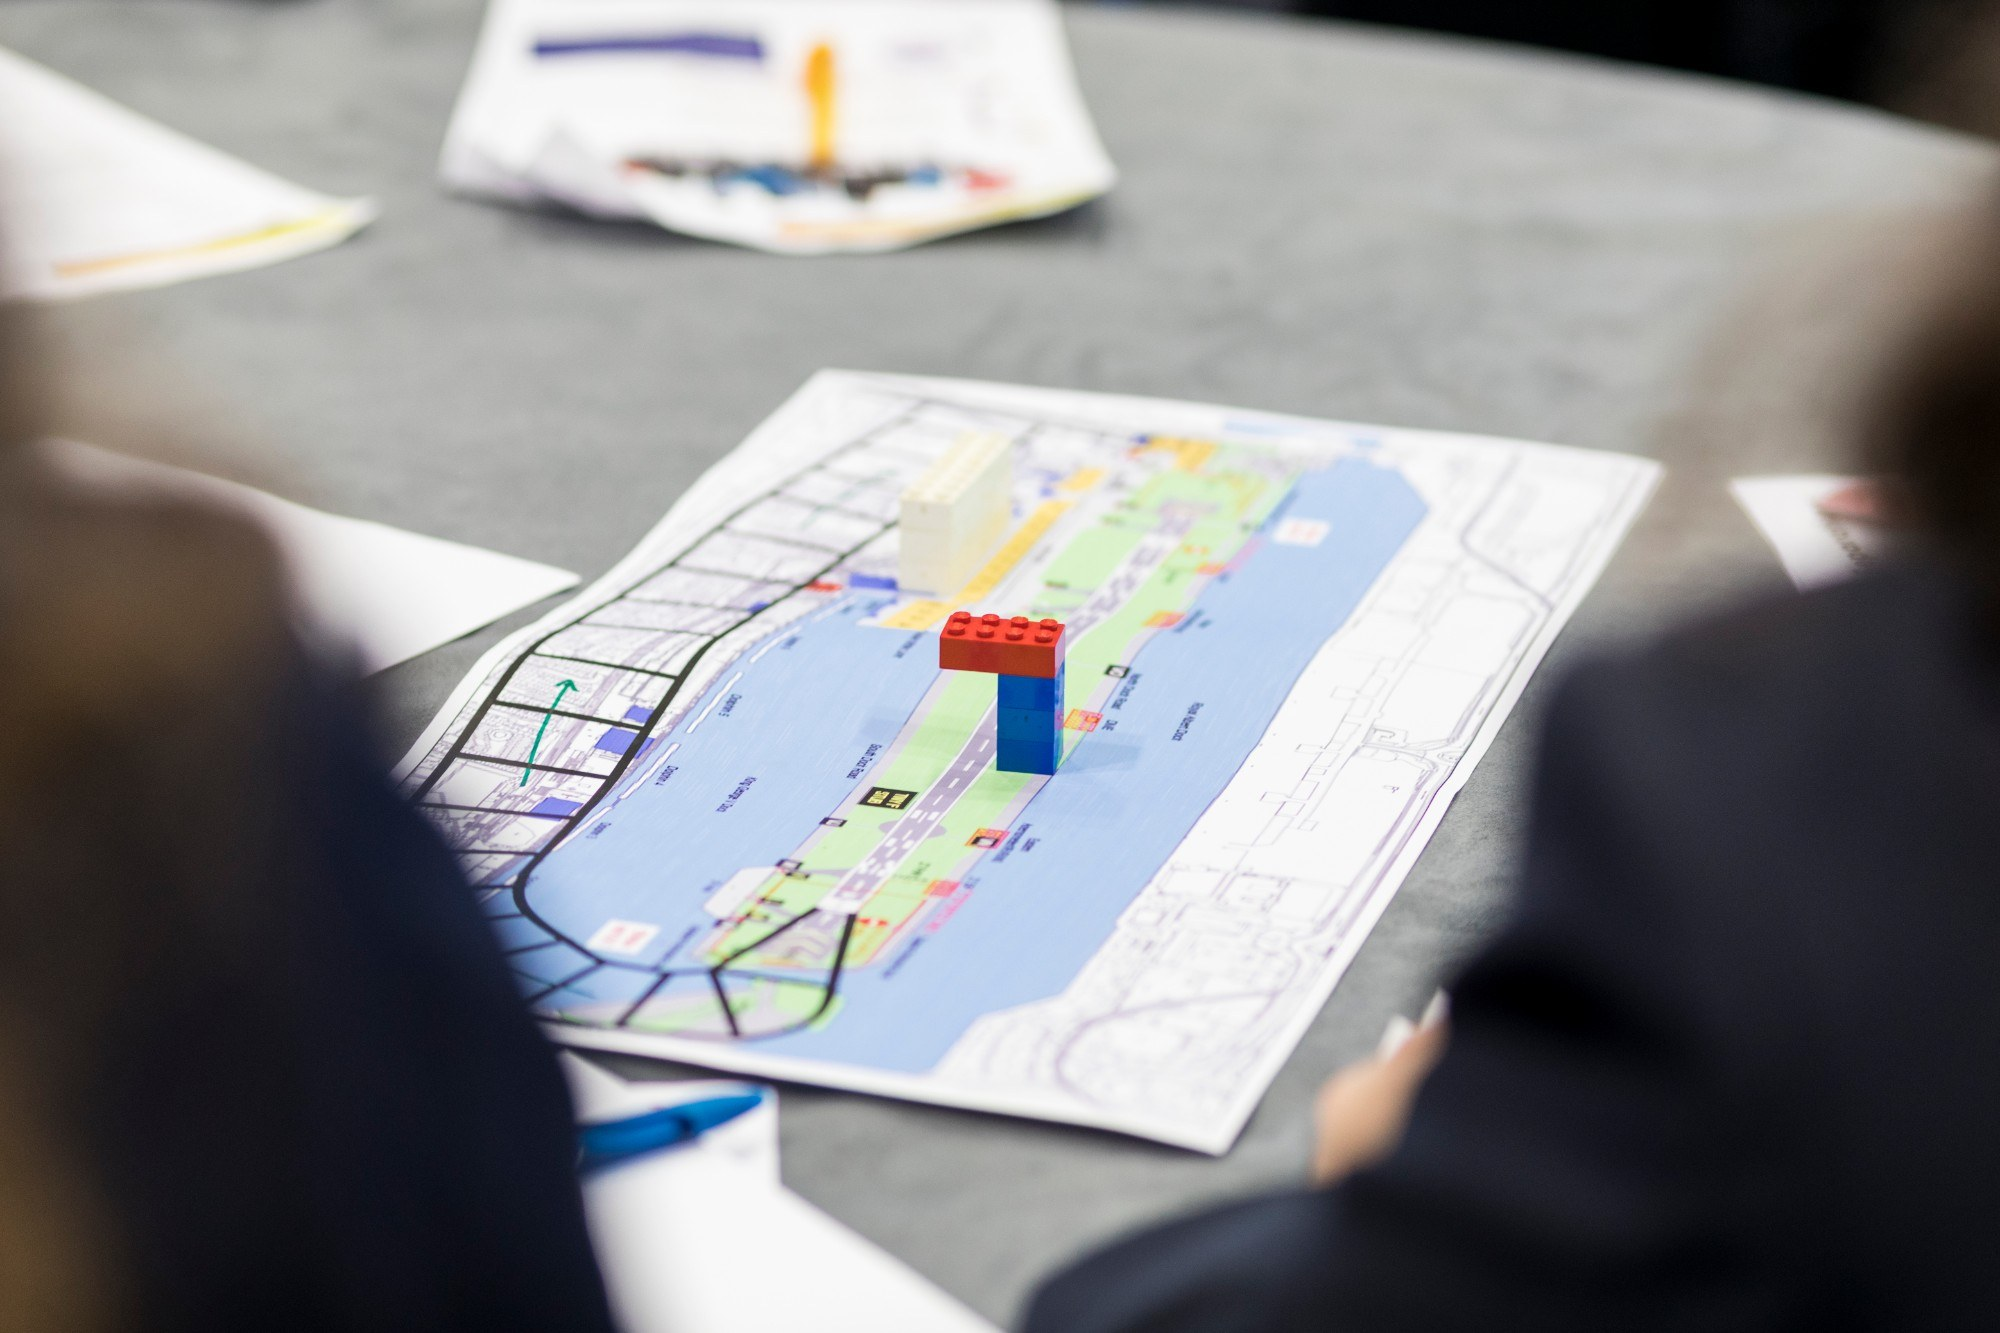 A map of LCY with a little lego model on it symbolising an air traffic control tower